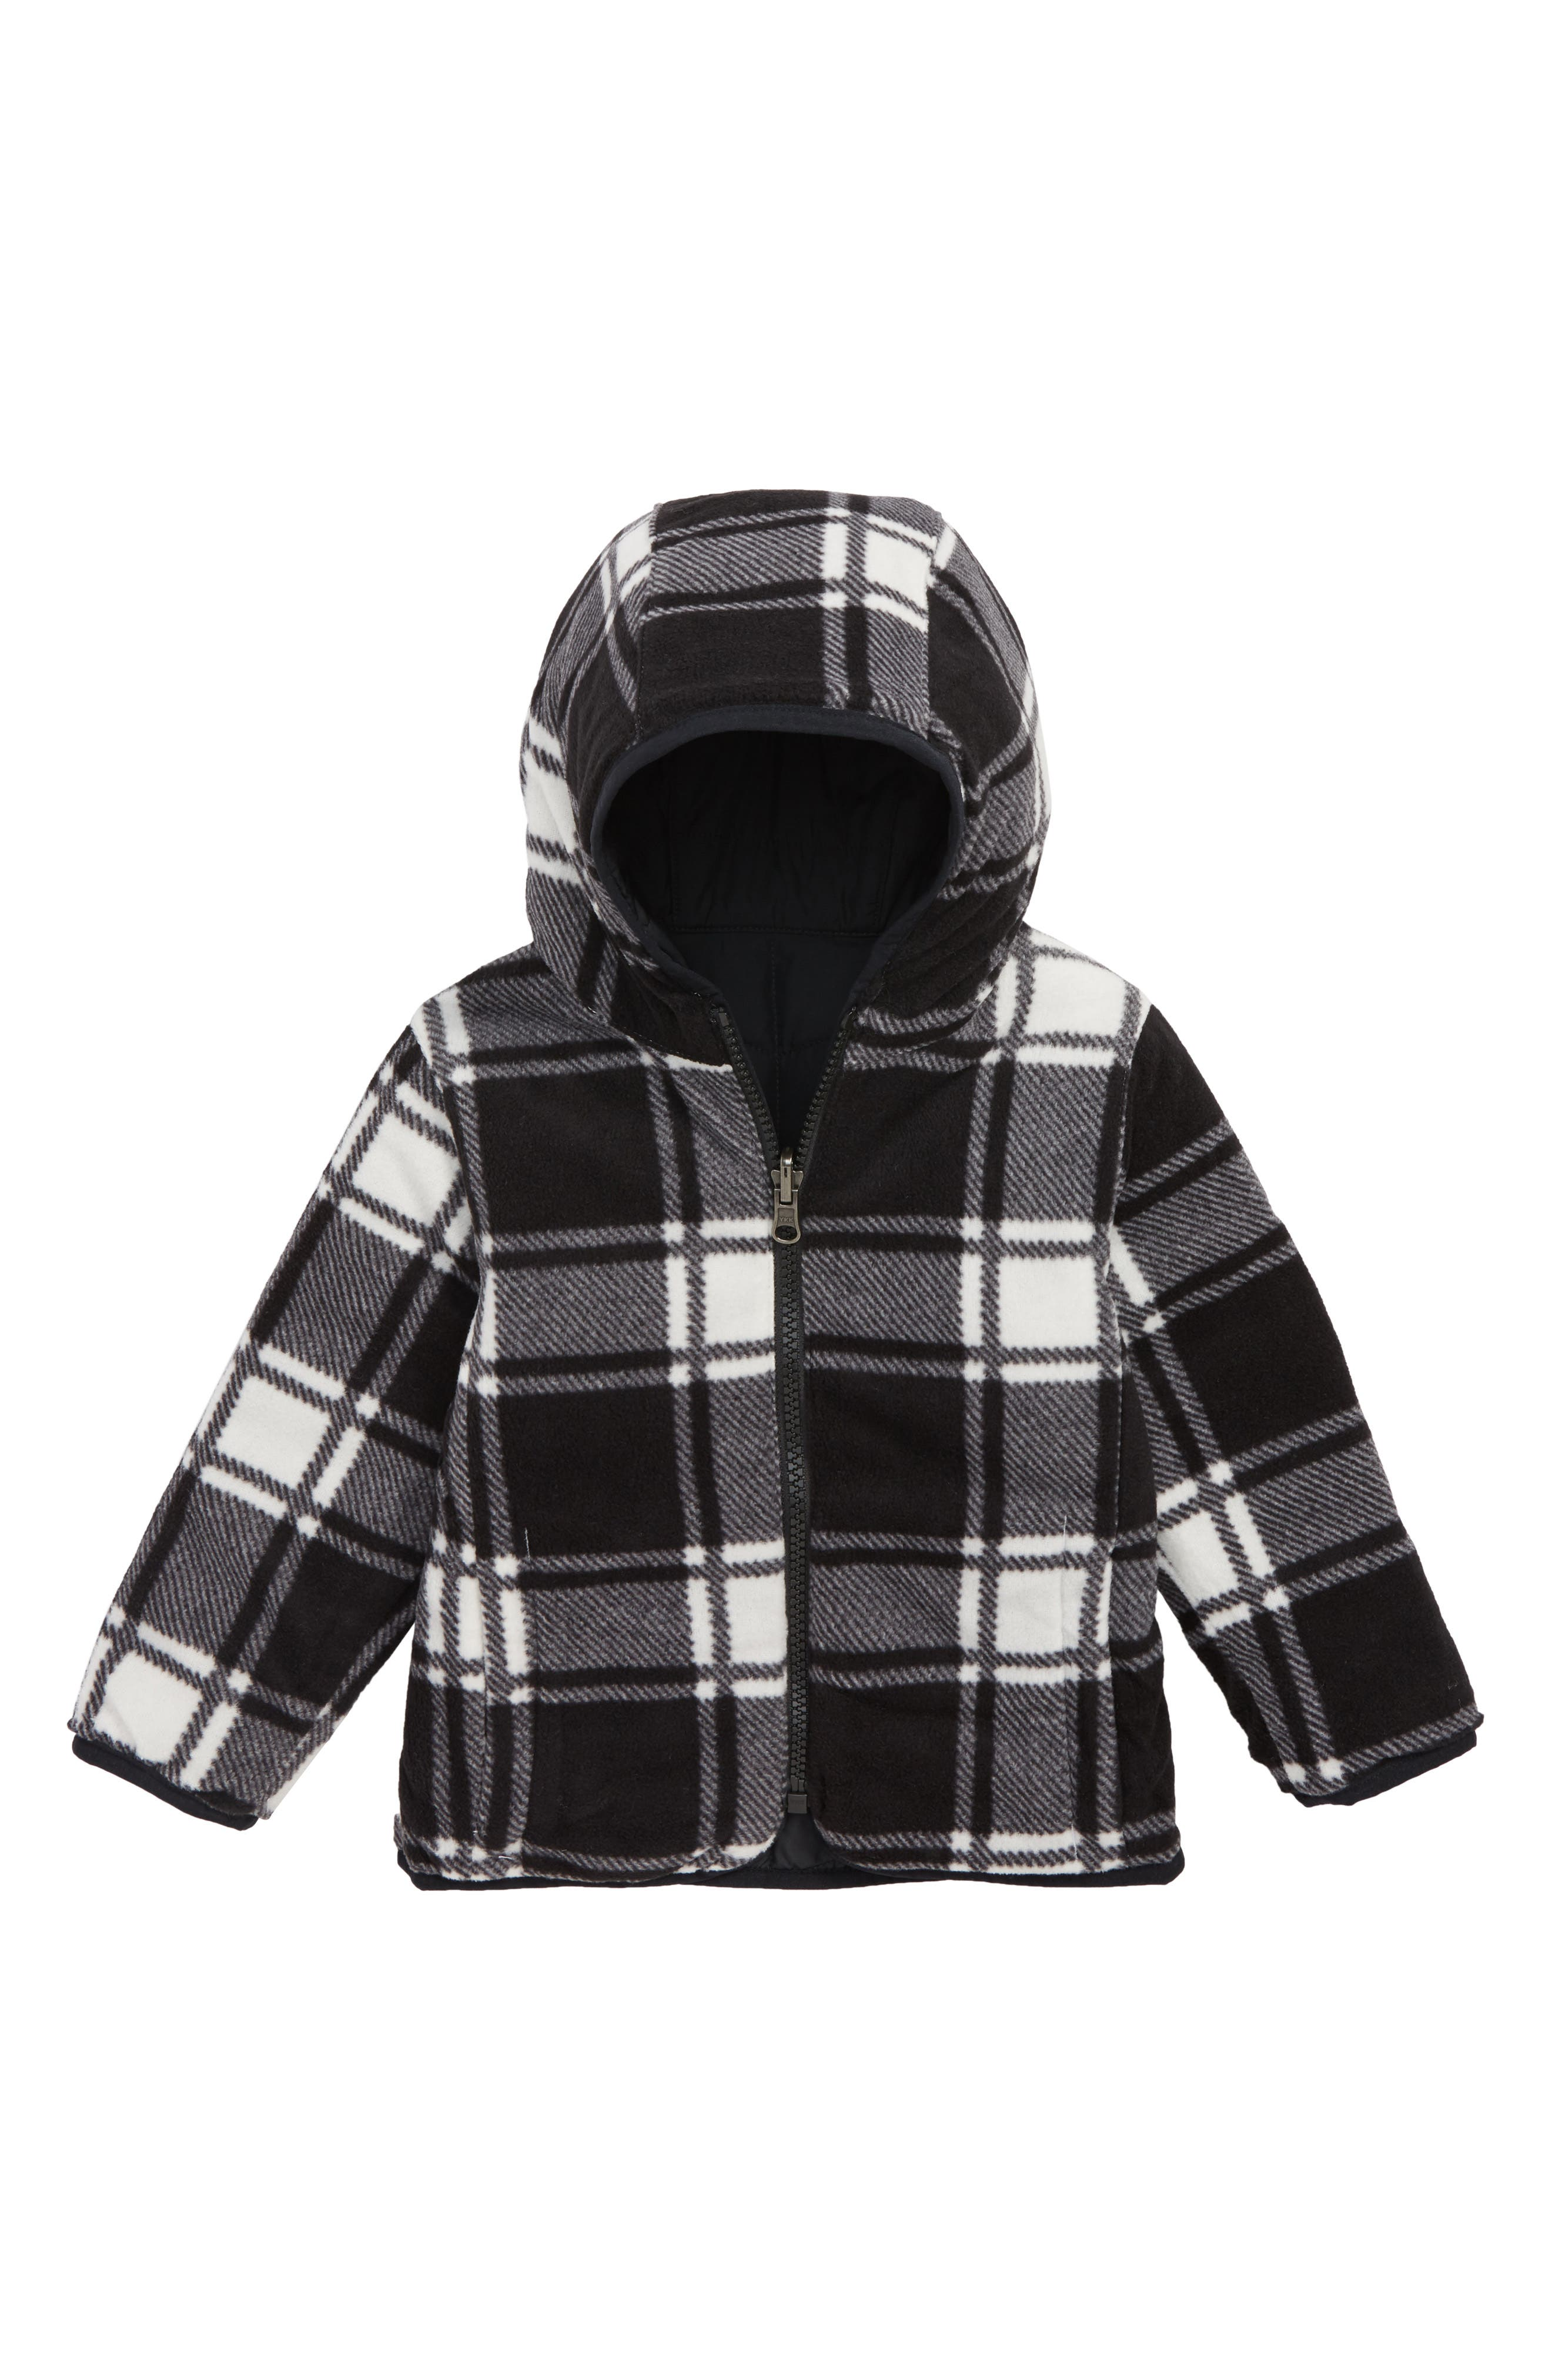 Double Trouble Omni-Shield Reversible Water-Resistant Hooded Jacket,                             Alternate thumbnail 2, color,                             BLACK